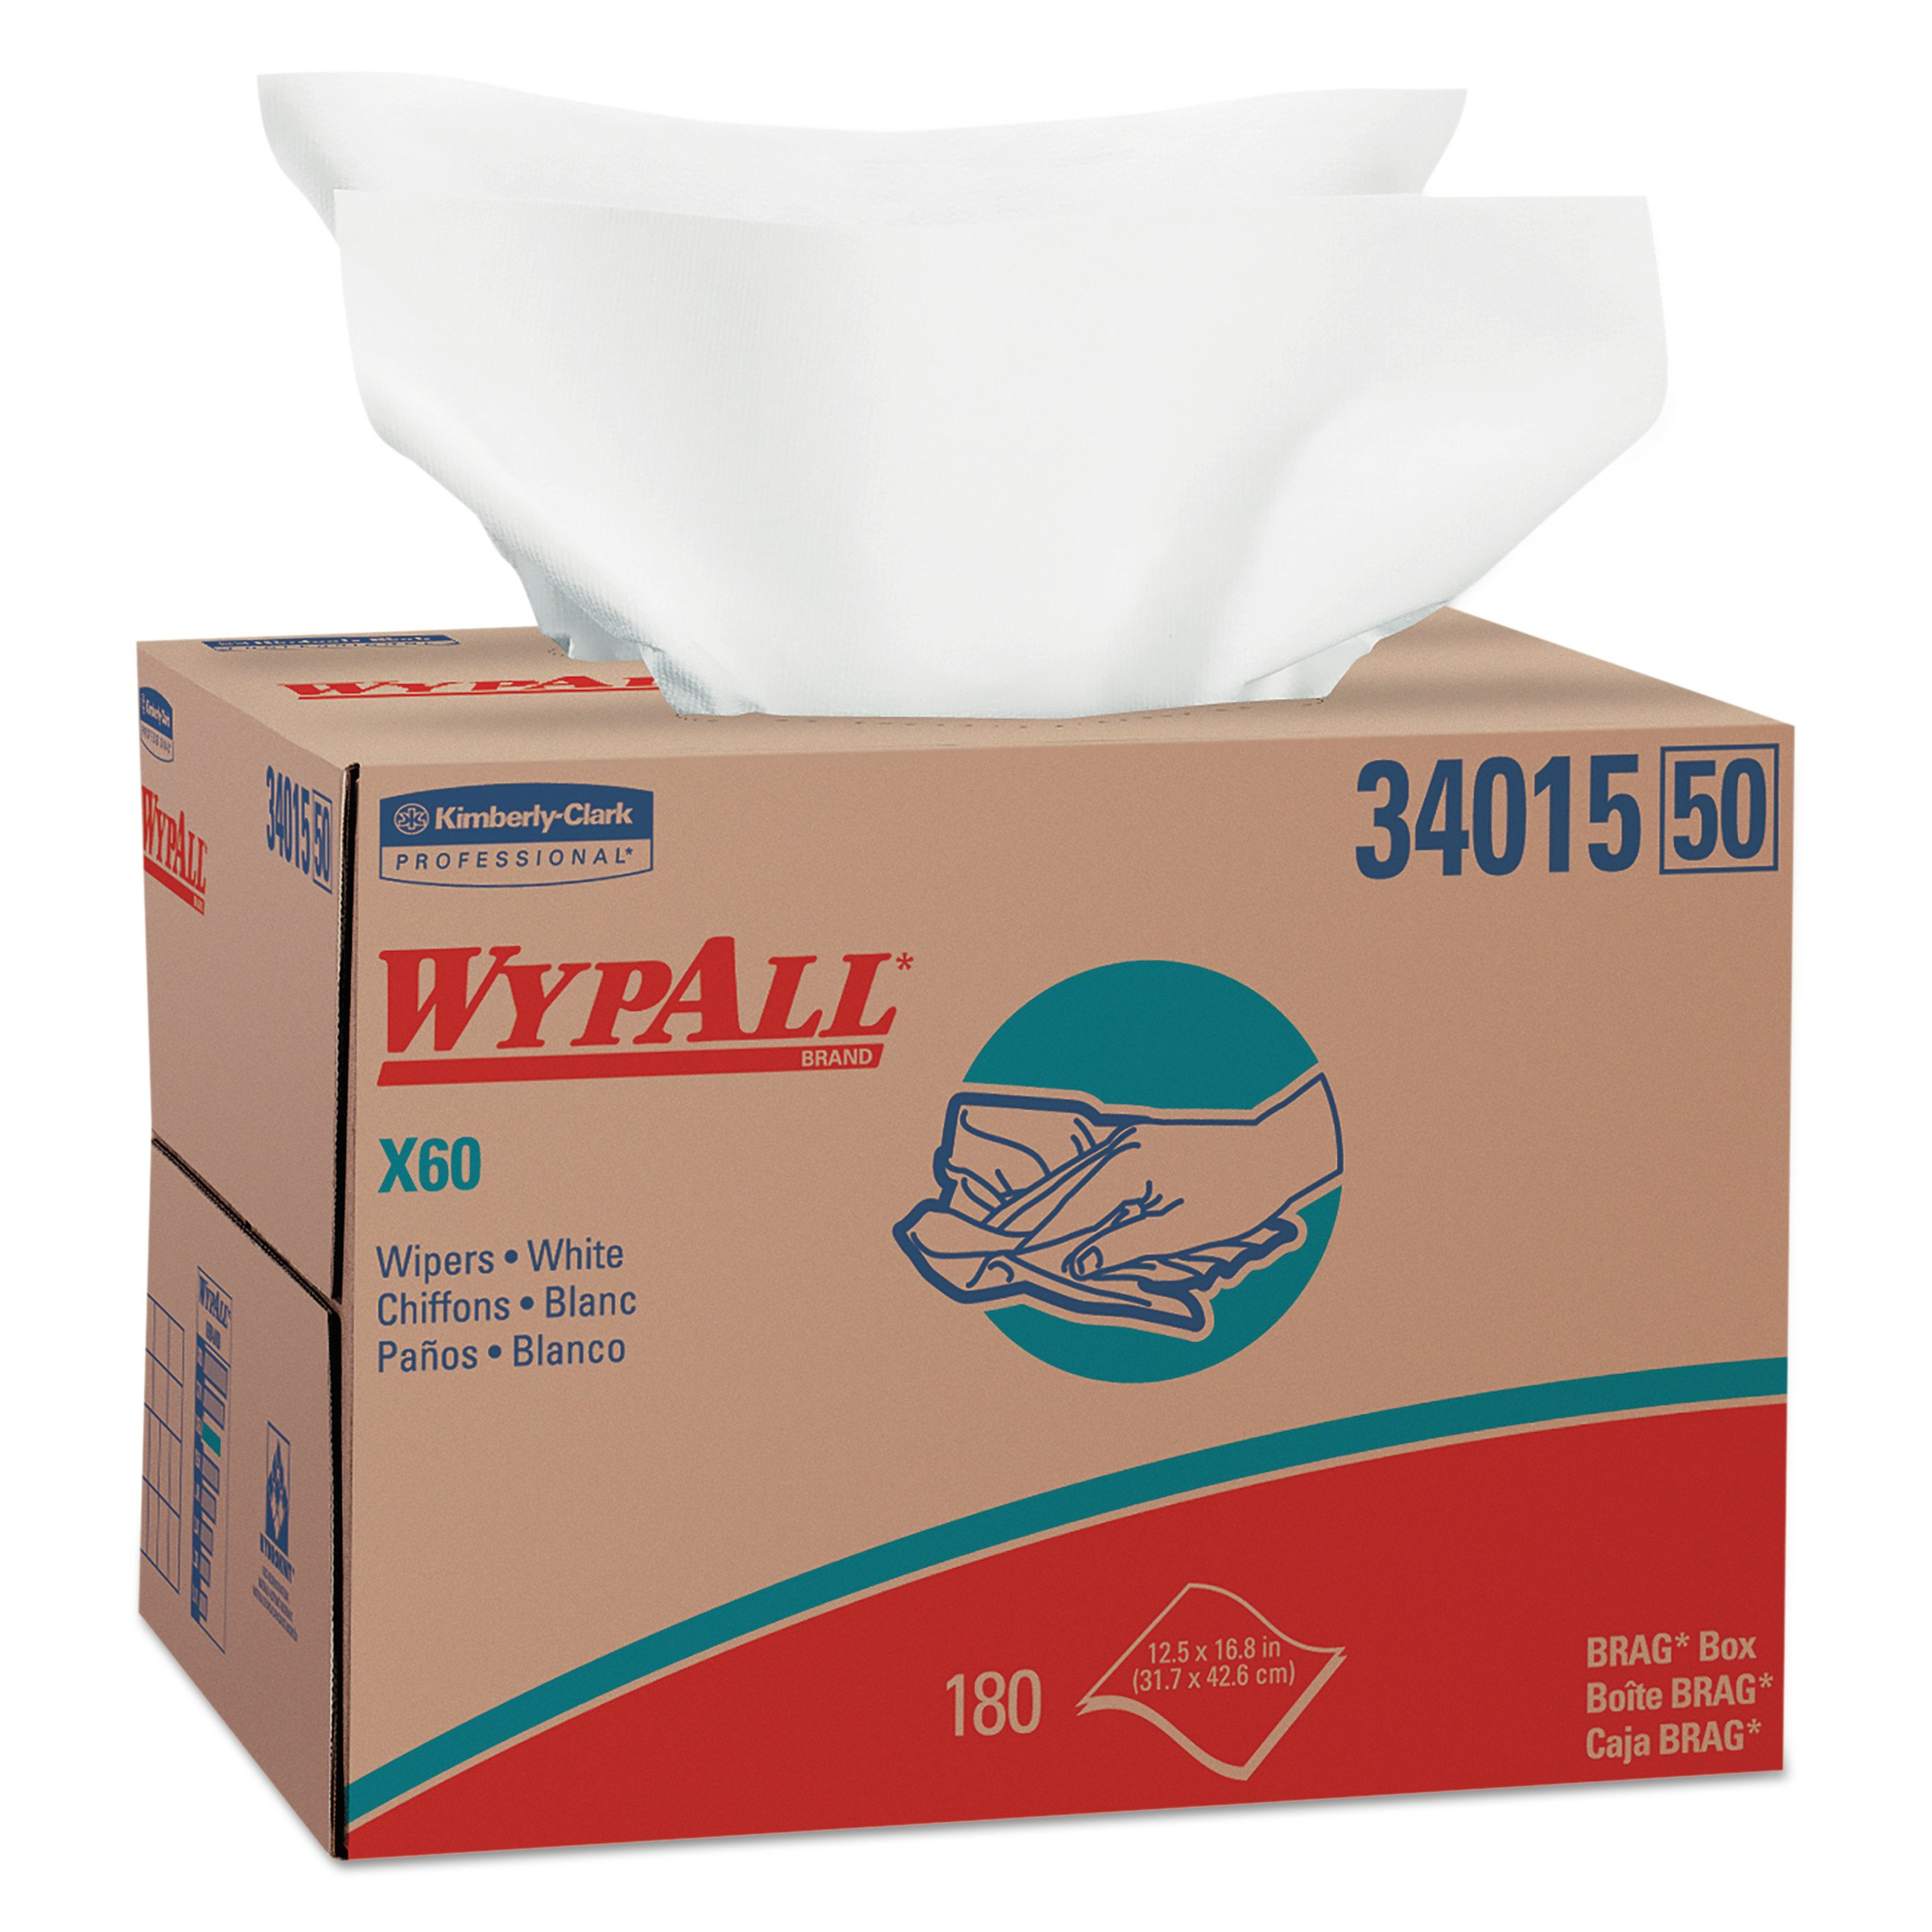 Wypall X60 Reusable Cloths (34015) in Brag Box, White, 180 Sheets/Box, 1 Box/Case